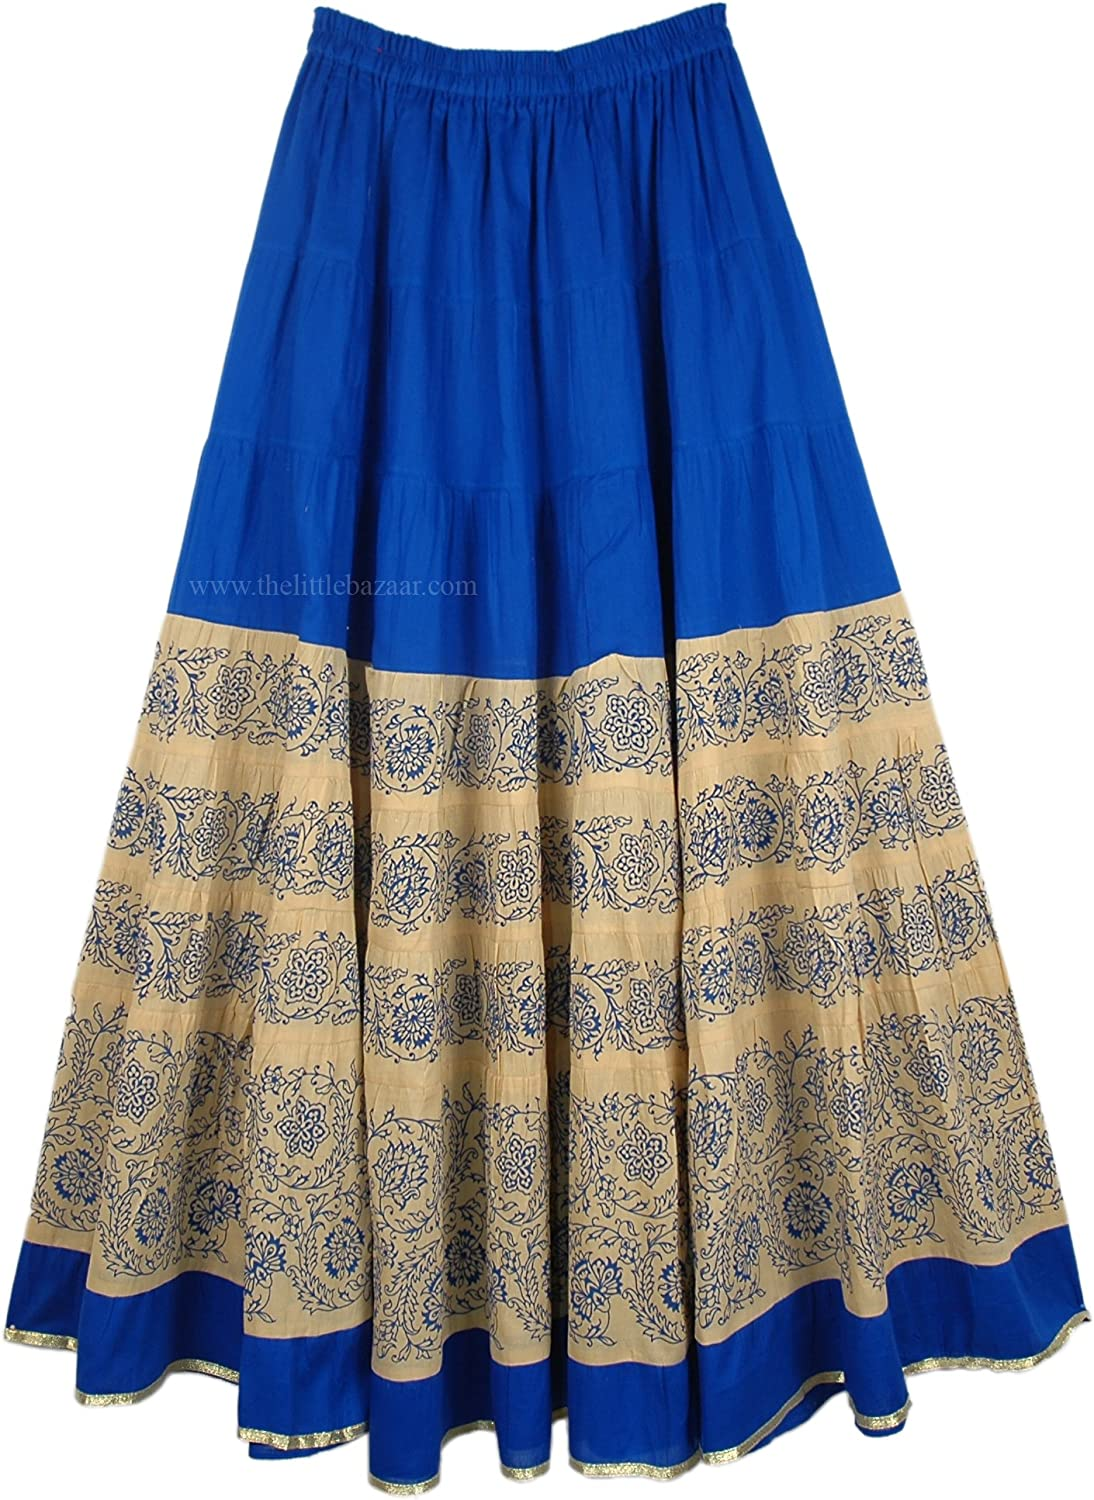 TLB Long Cotton Maxi Skirt in bluee and Khaki  L 38.5 ; W 26 34